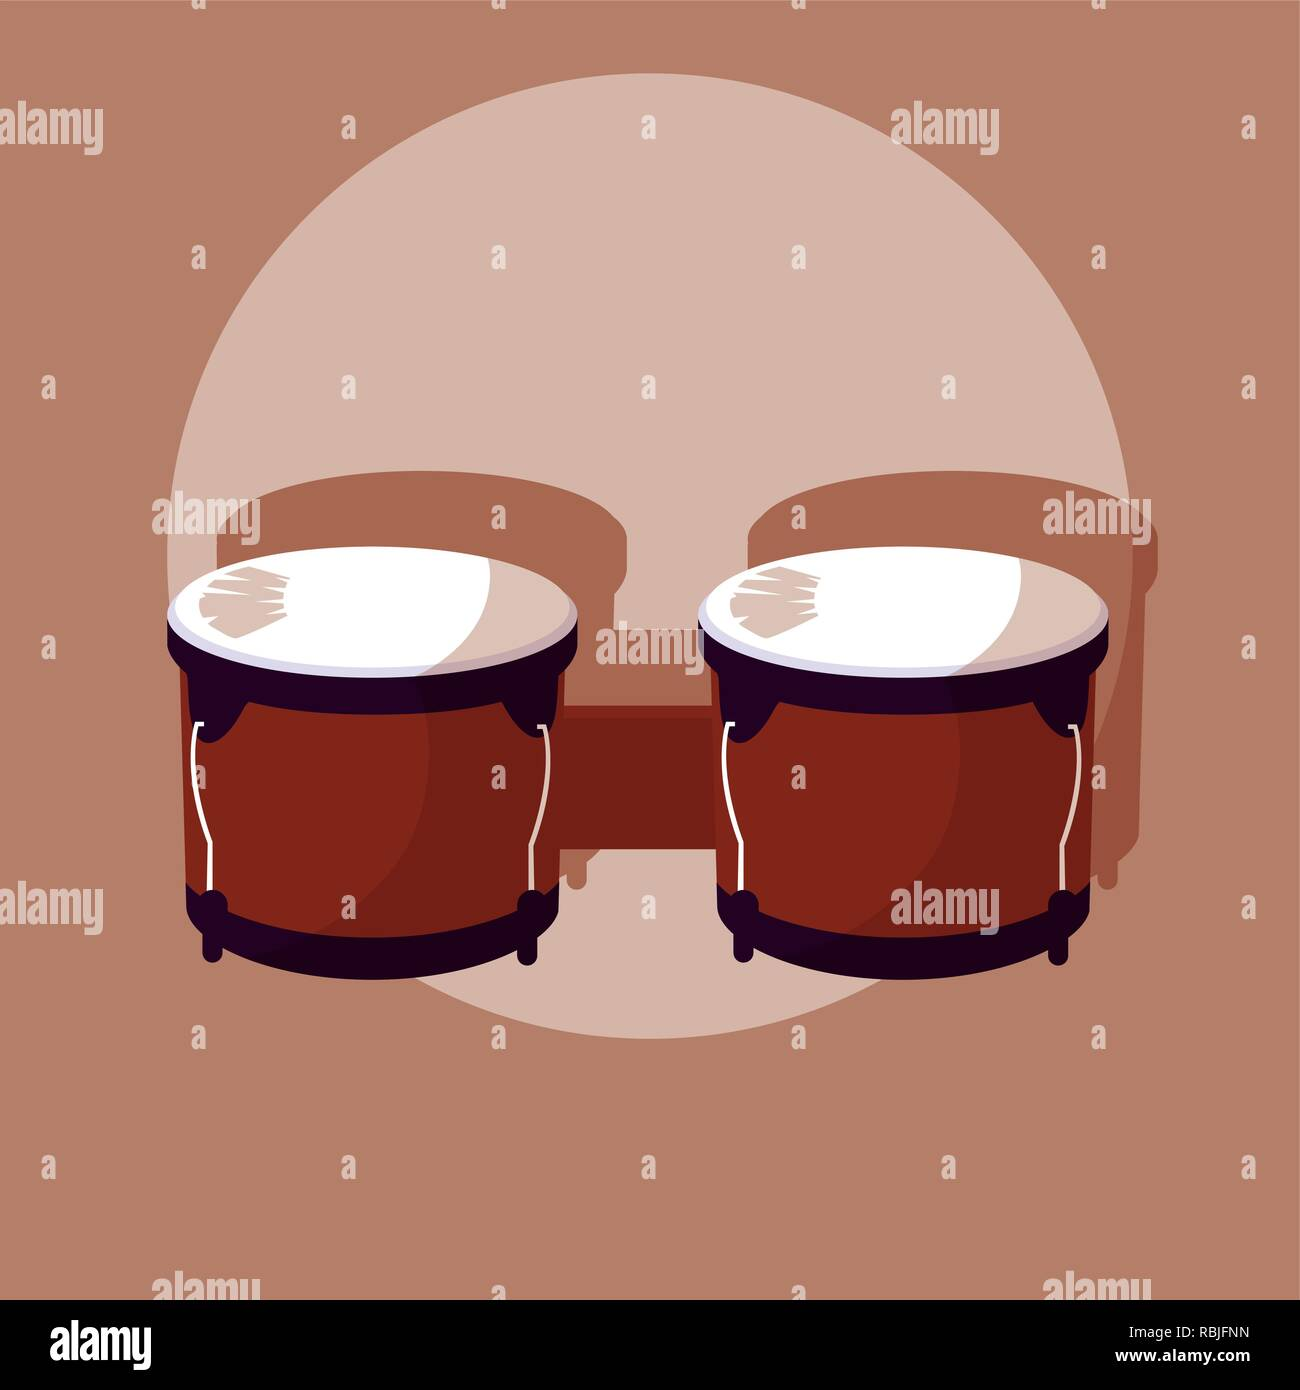 timbals tropical instrument icon vector illustration design - Stock Image